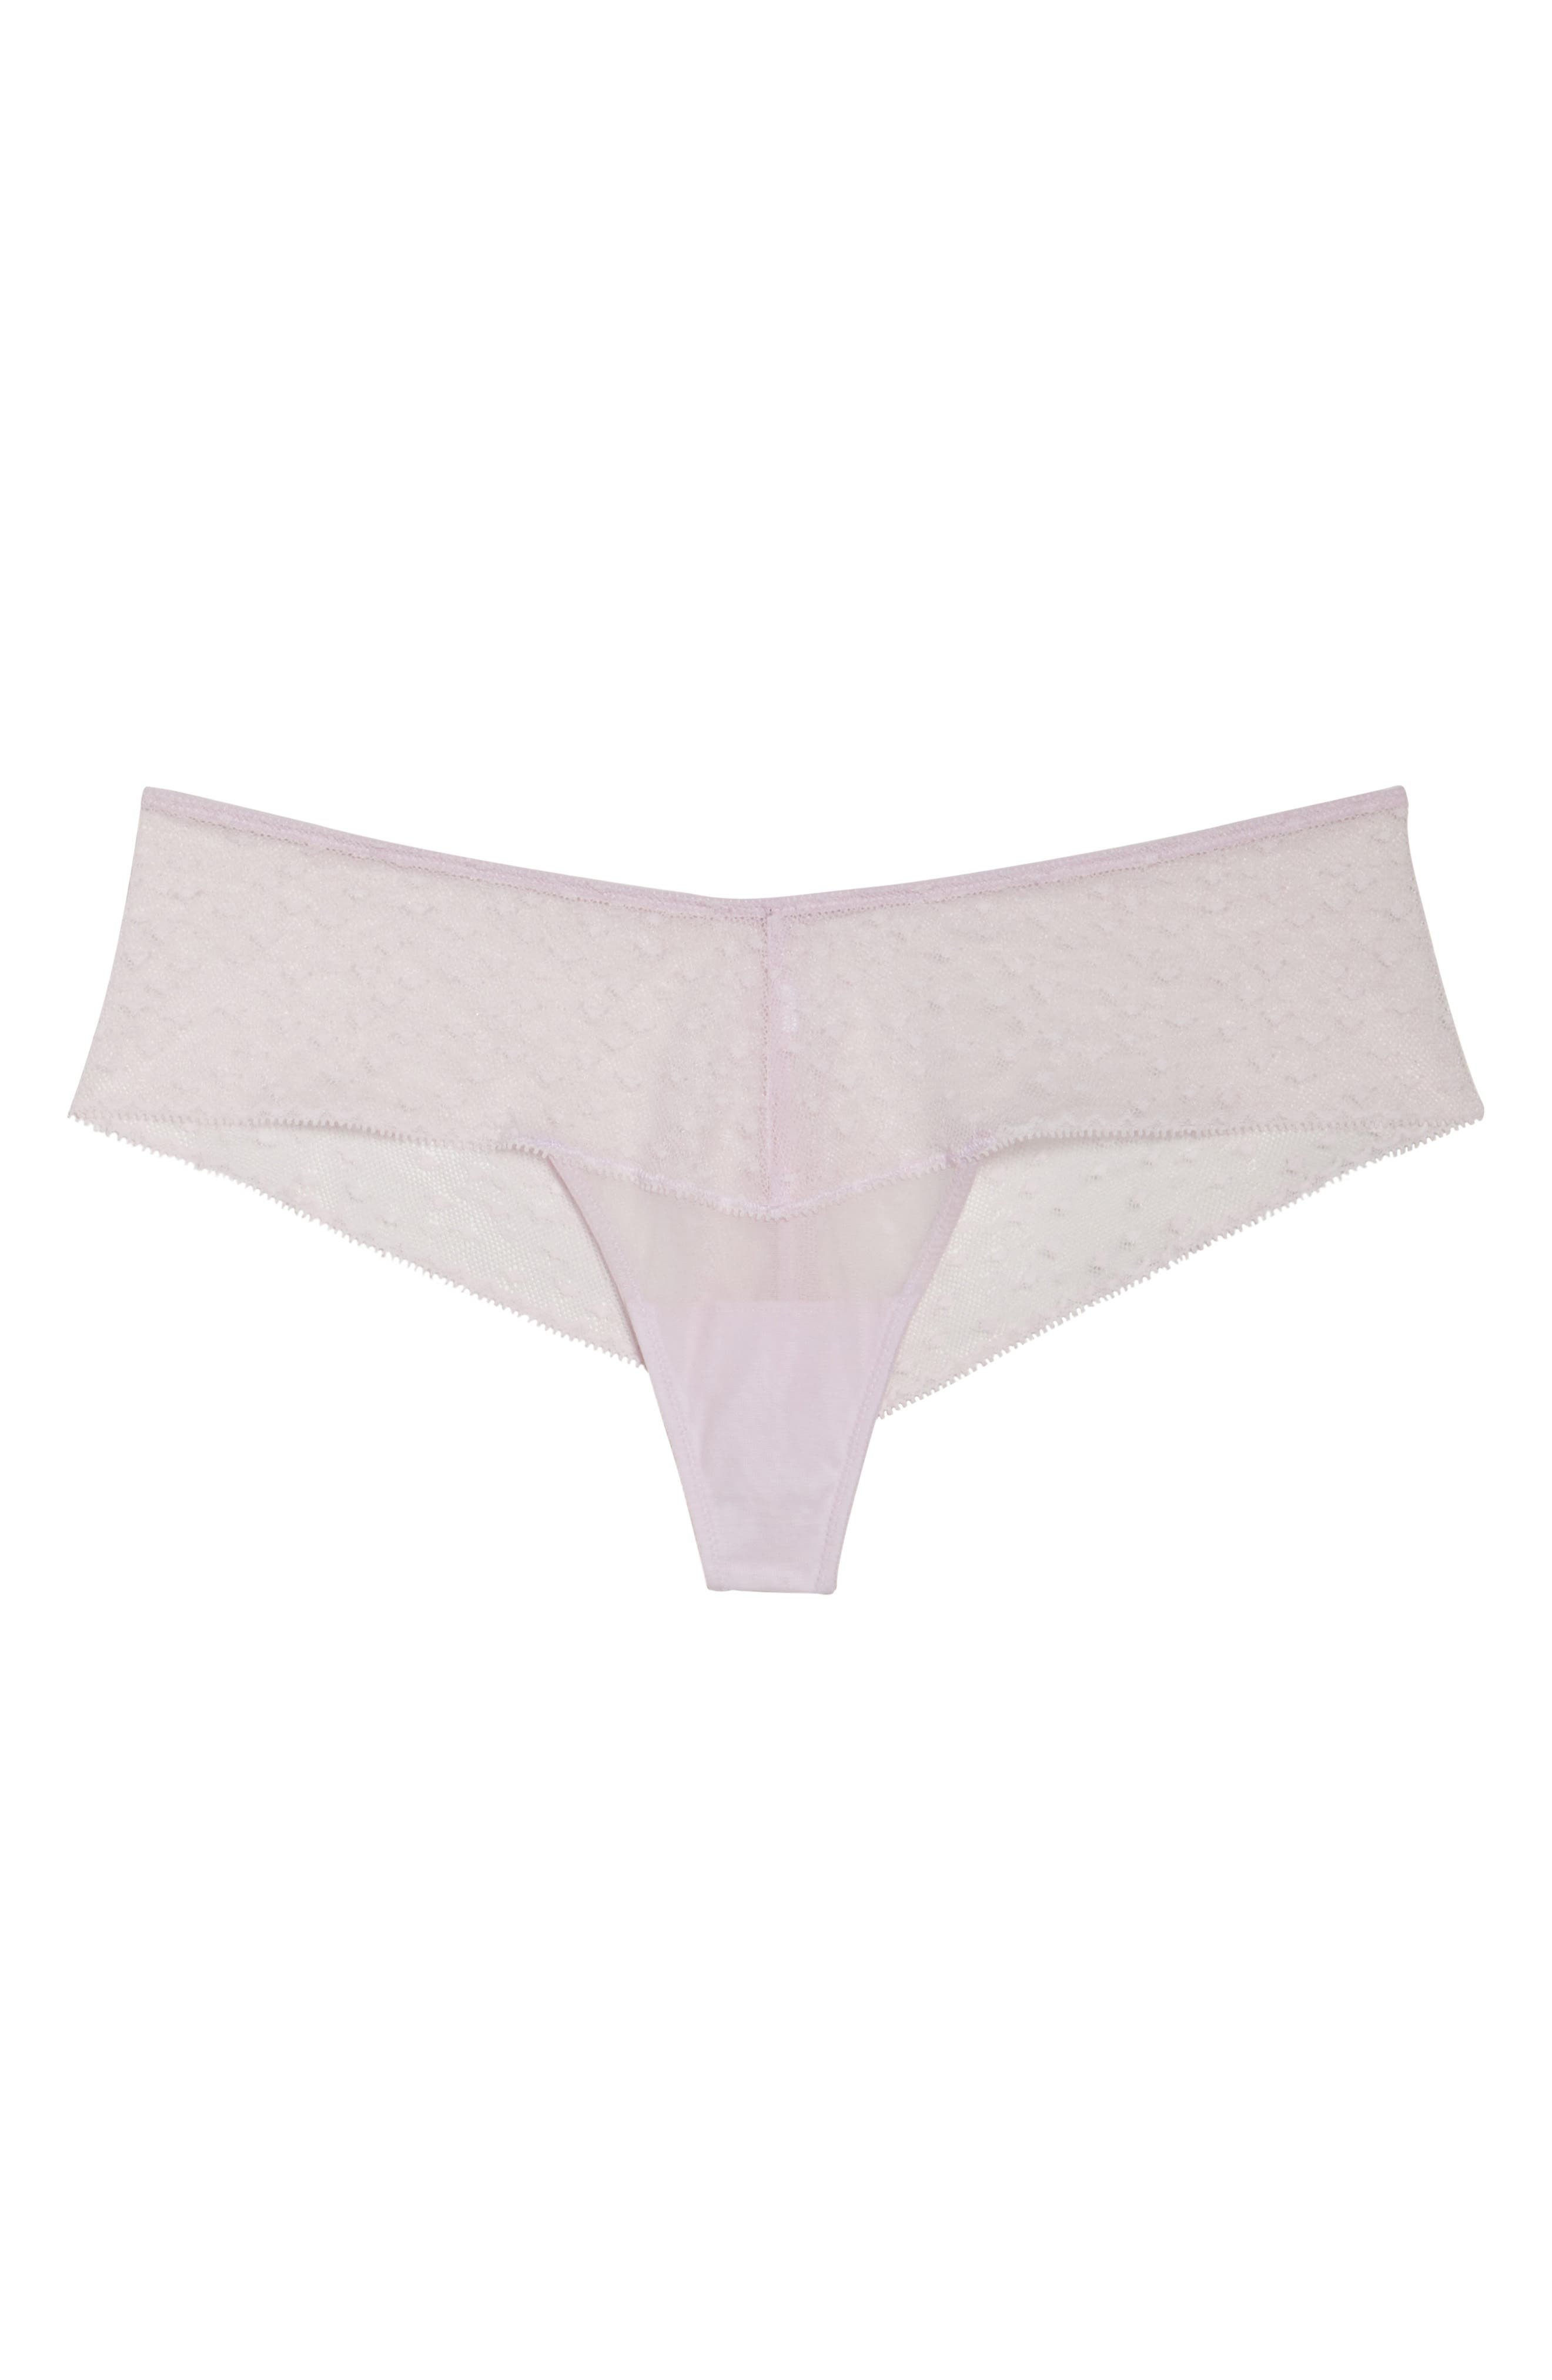 Decoy Cheeky Hipster Briefs,                             Alternate thumbnail 4, color,                             Light Hearted